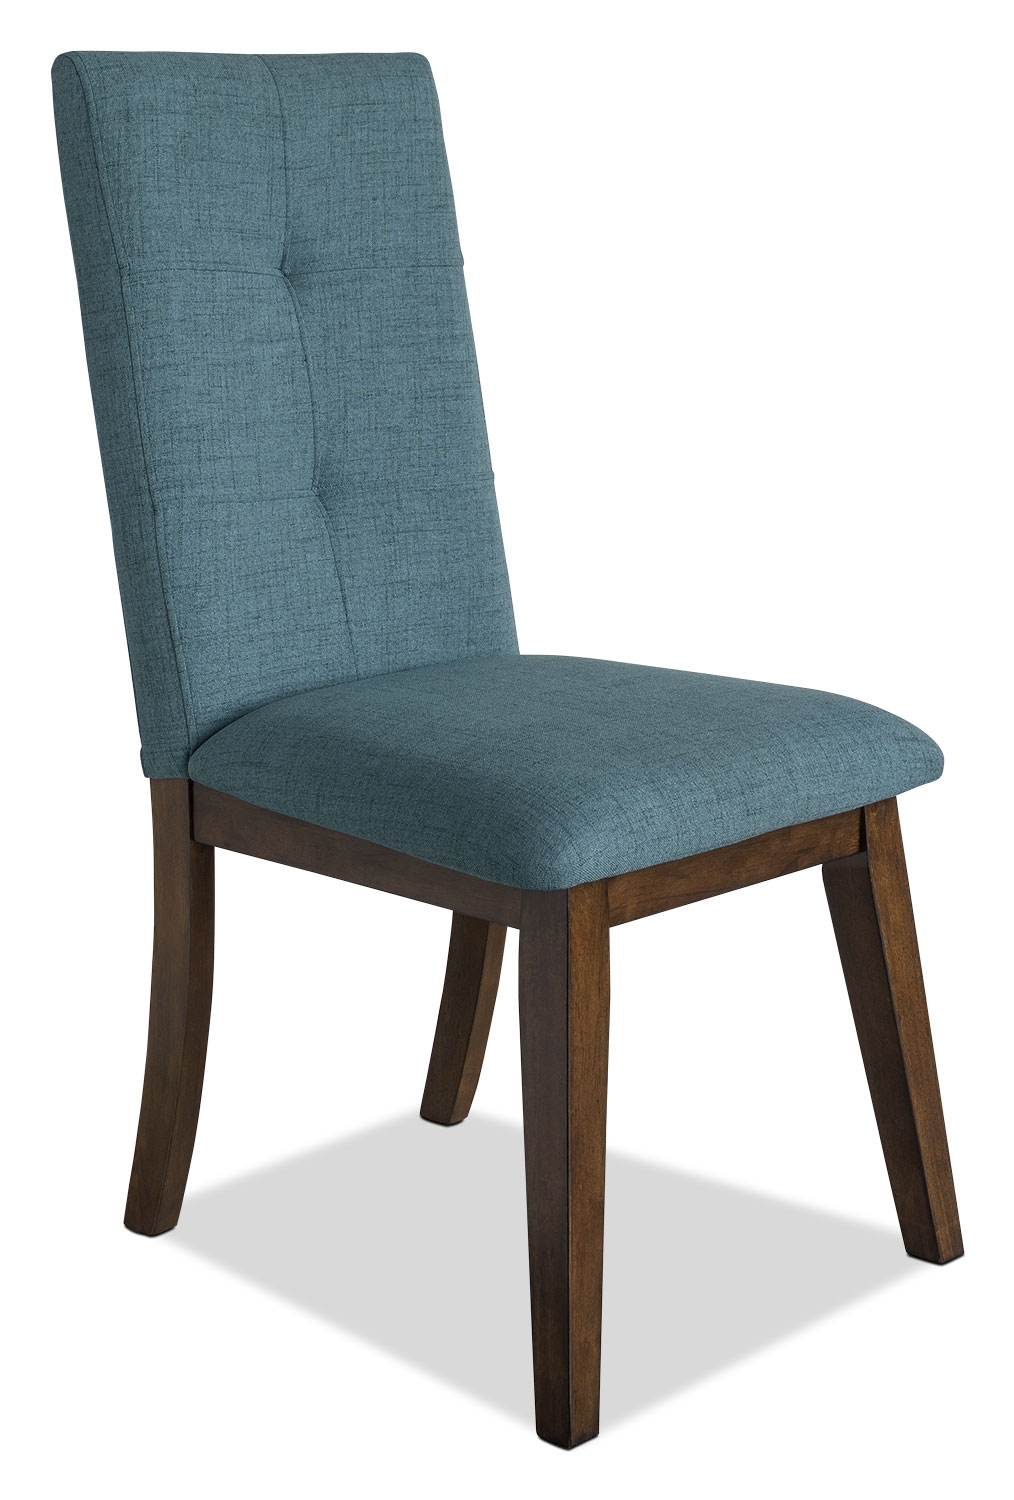 Chelsea Fabric Dining Chair – Aqua | The Brick